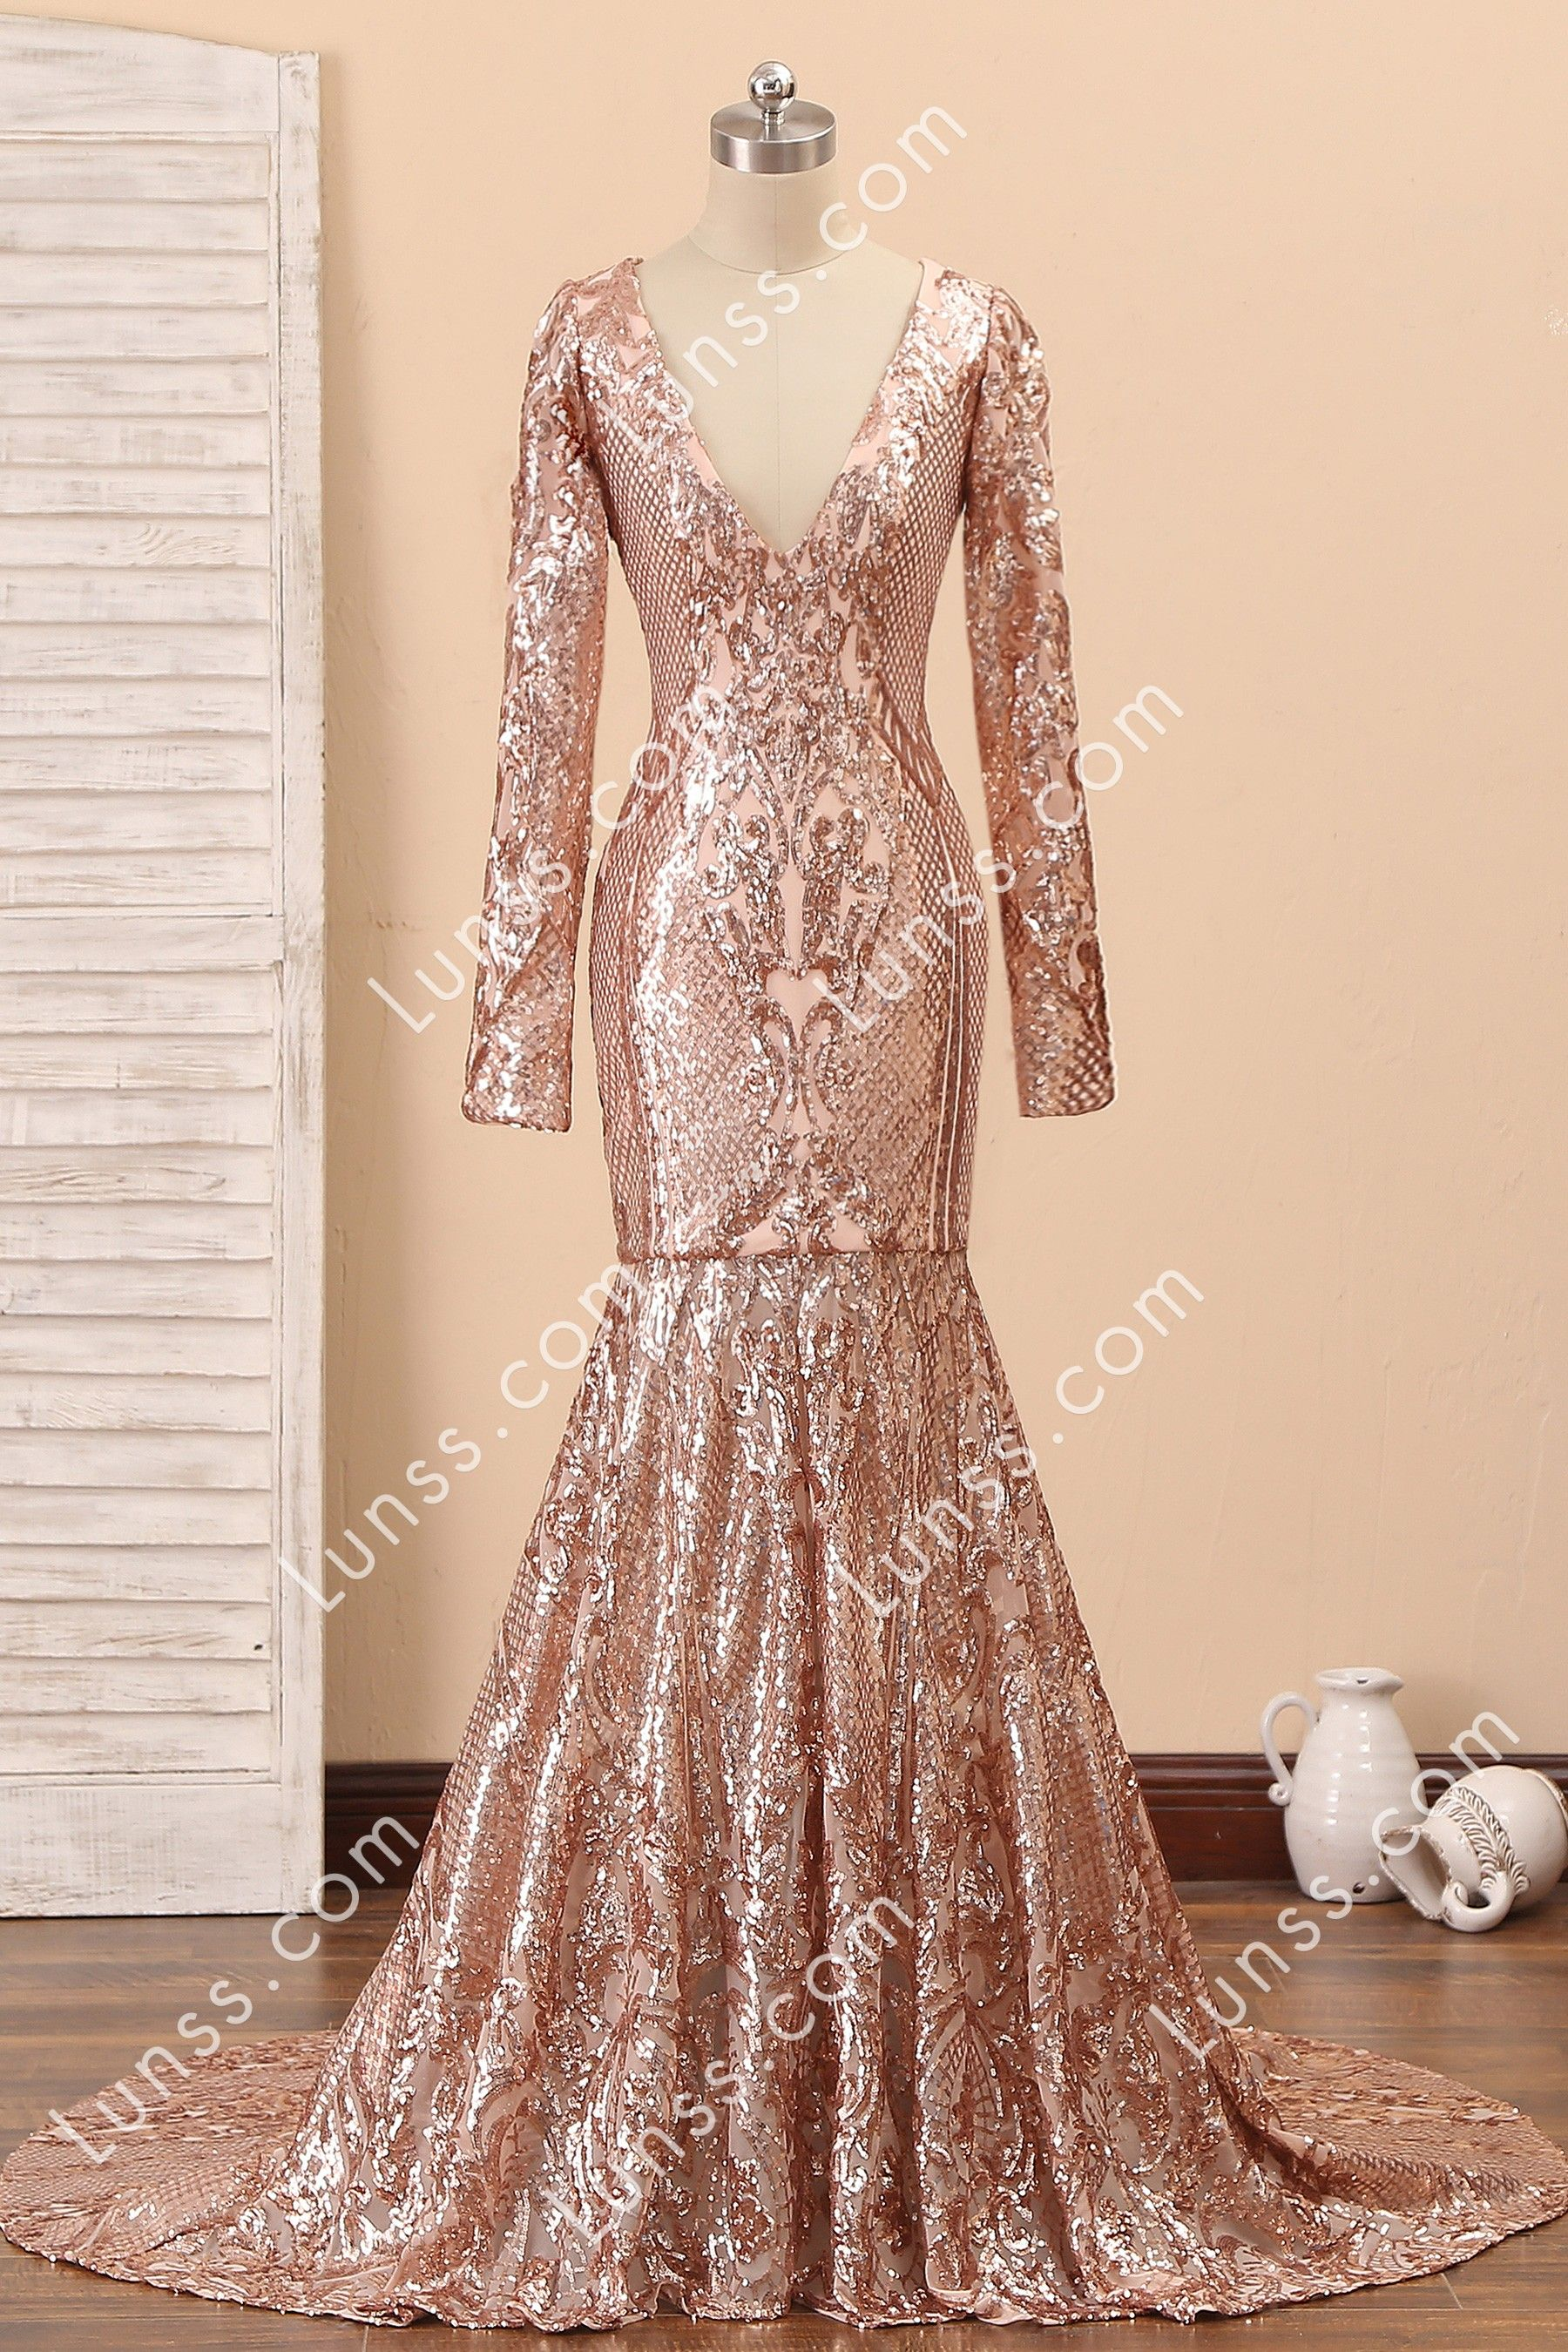 This Stunning Champagne Gold Patterned Sequin Slim Fit Mermaid Prom Gown Features Plunging V Neckline Long Feather Prom Dress Prom Dresses Fitted Prom Dresses [ 2700 x 1800 Pixel ]